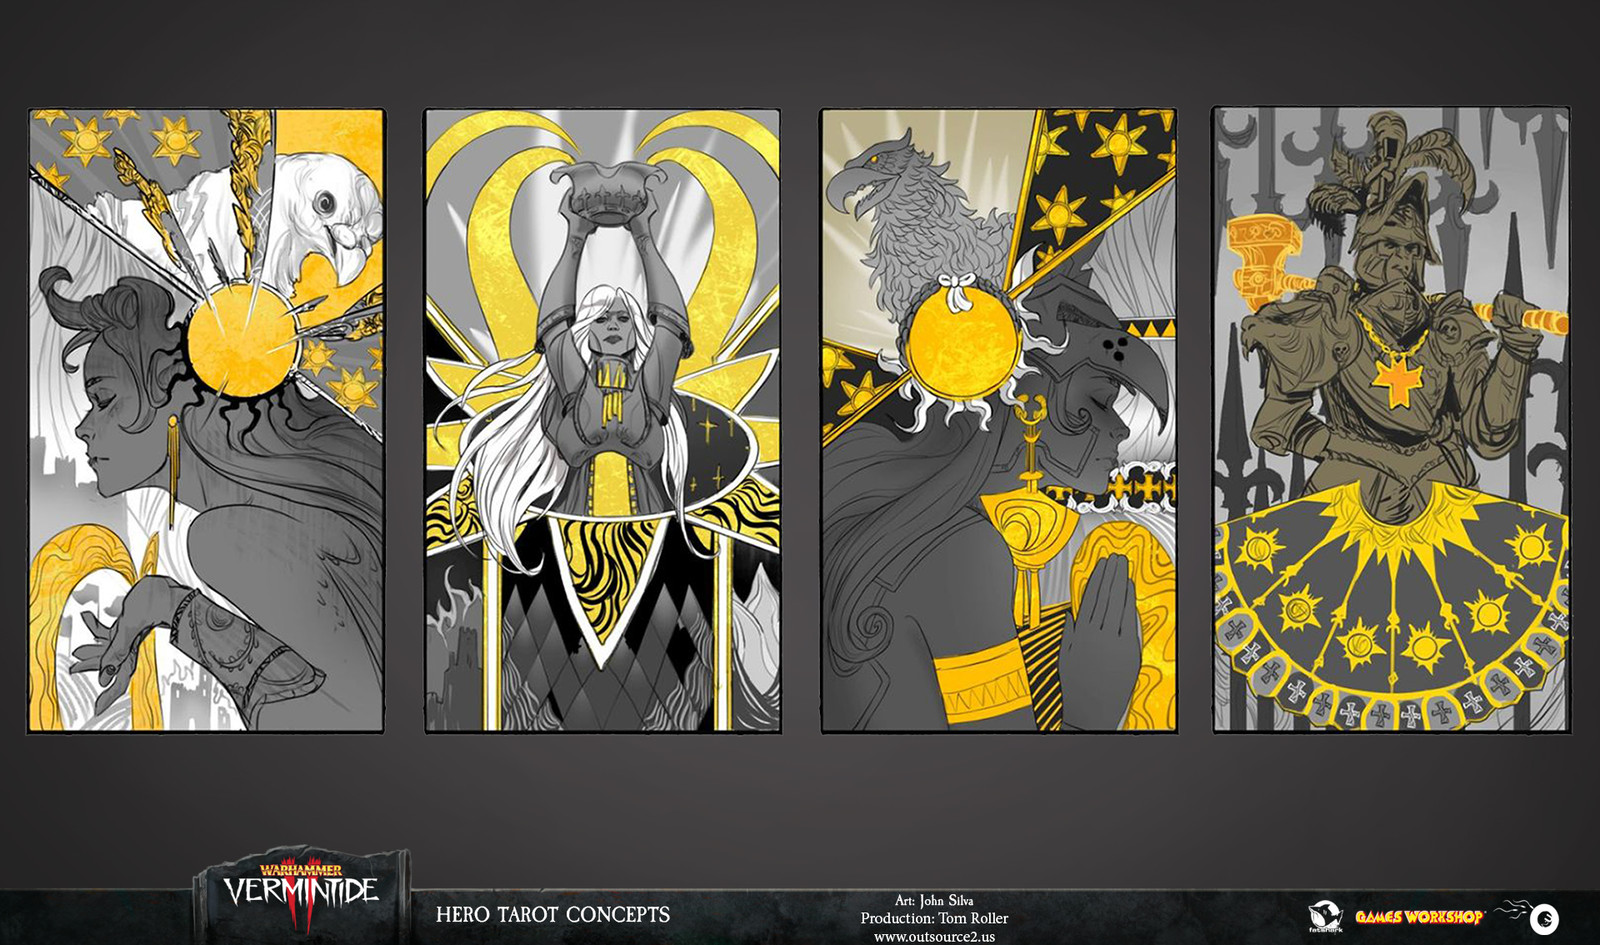 In our love of art-deco we wandered off into ideas that were too abstract for the Hero card. When the project's Director Anders De Geer suggested we play with the imagery of Emperor Karl Franz, the winner was clear.